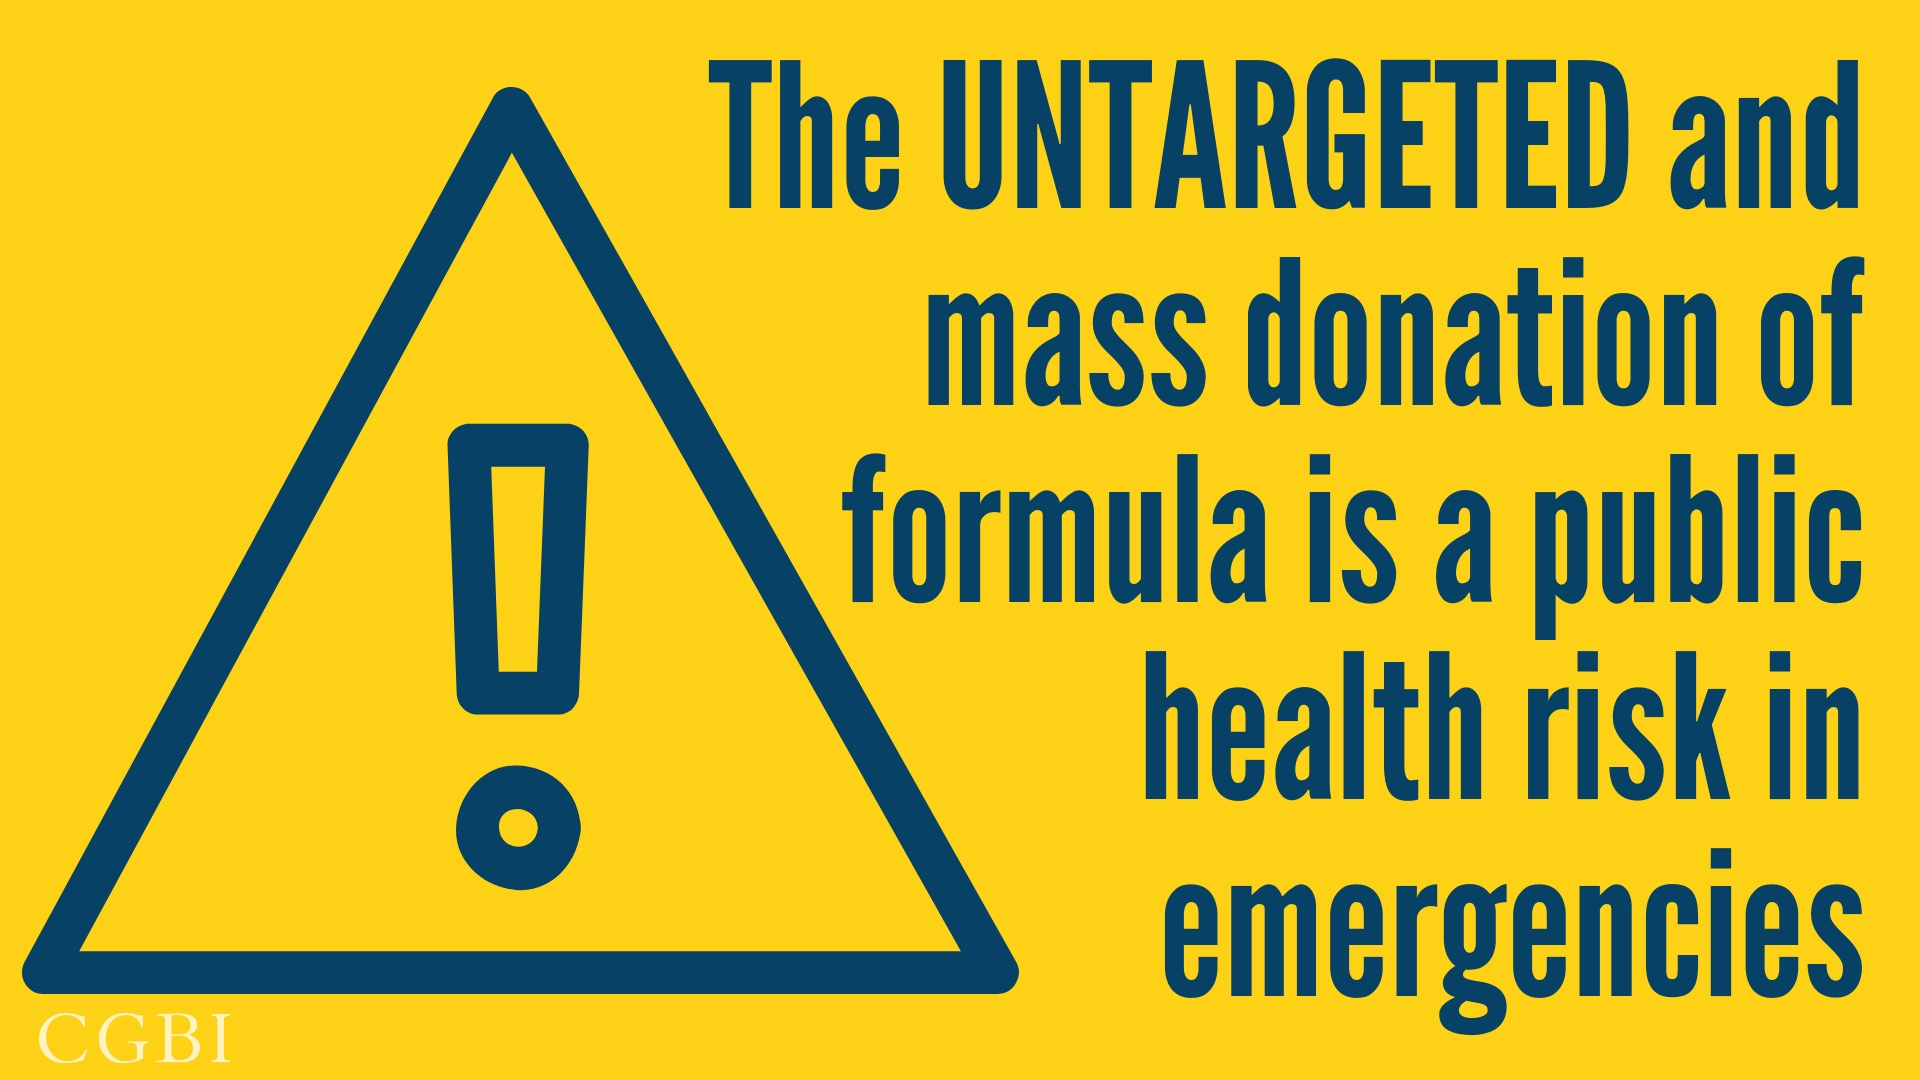 The untargeted and mass donation of formula is a public health risk in emergencies.